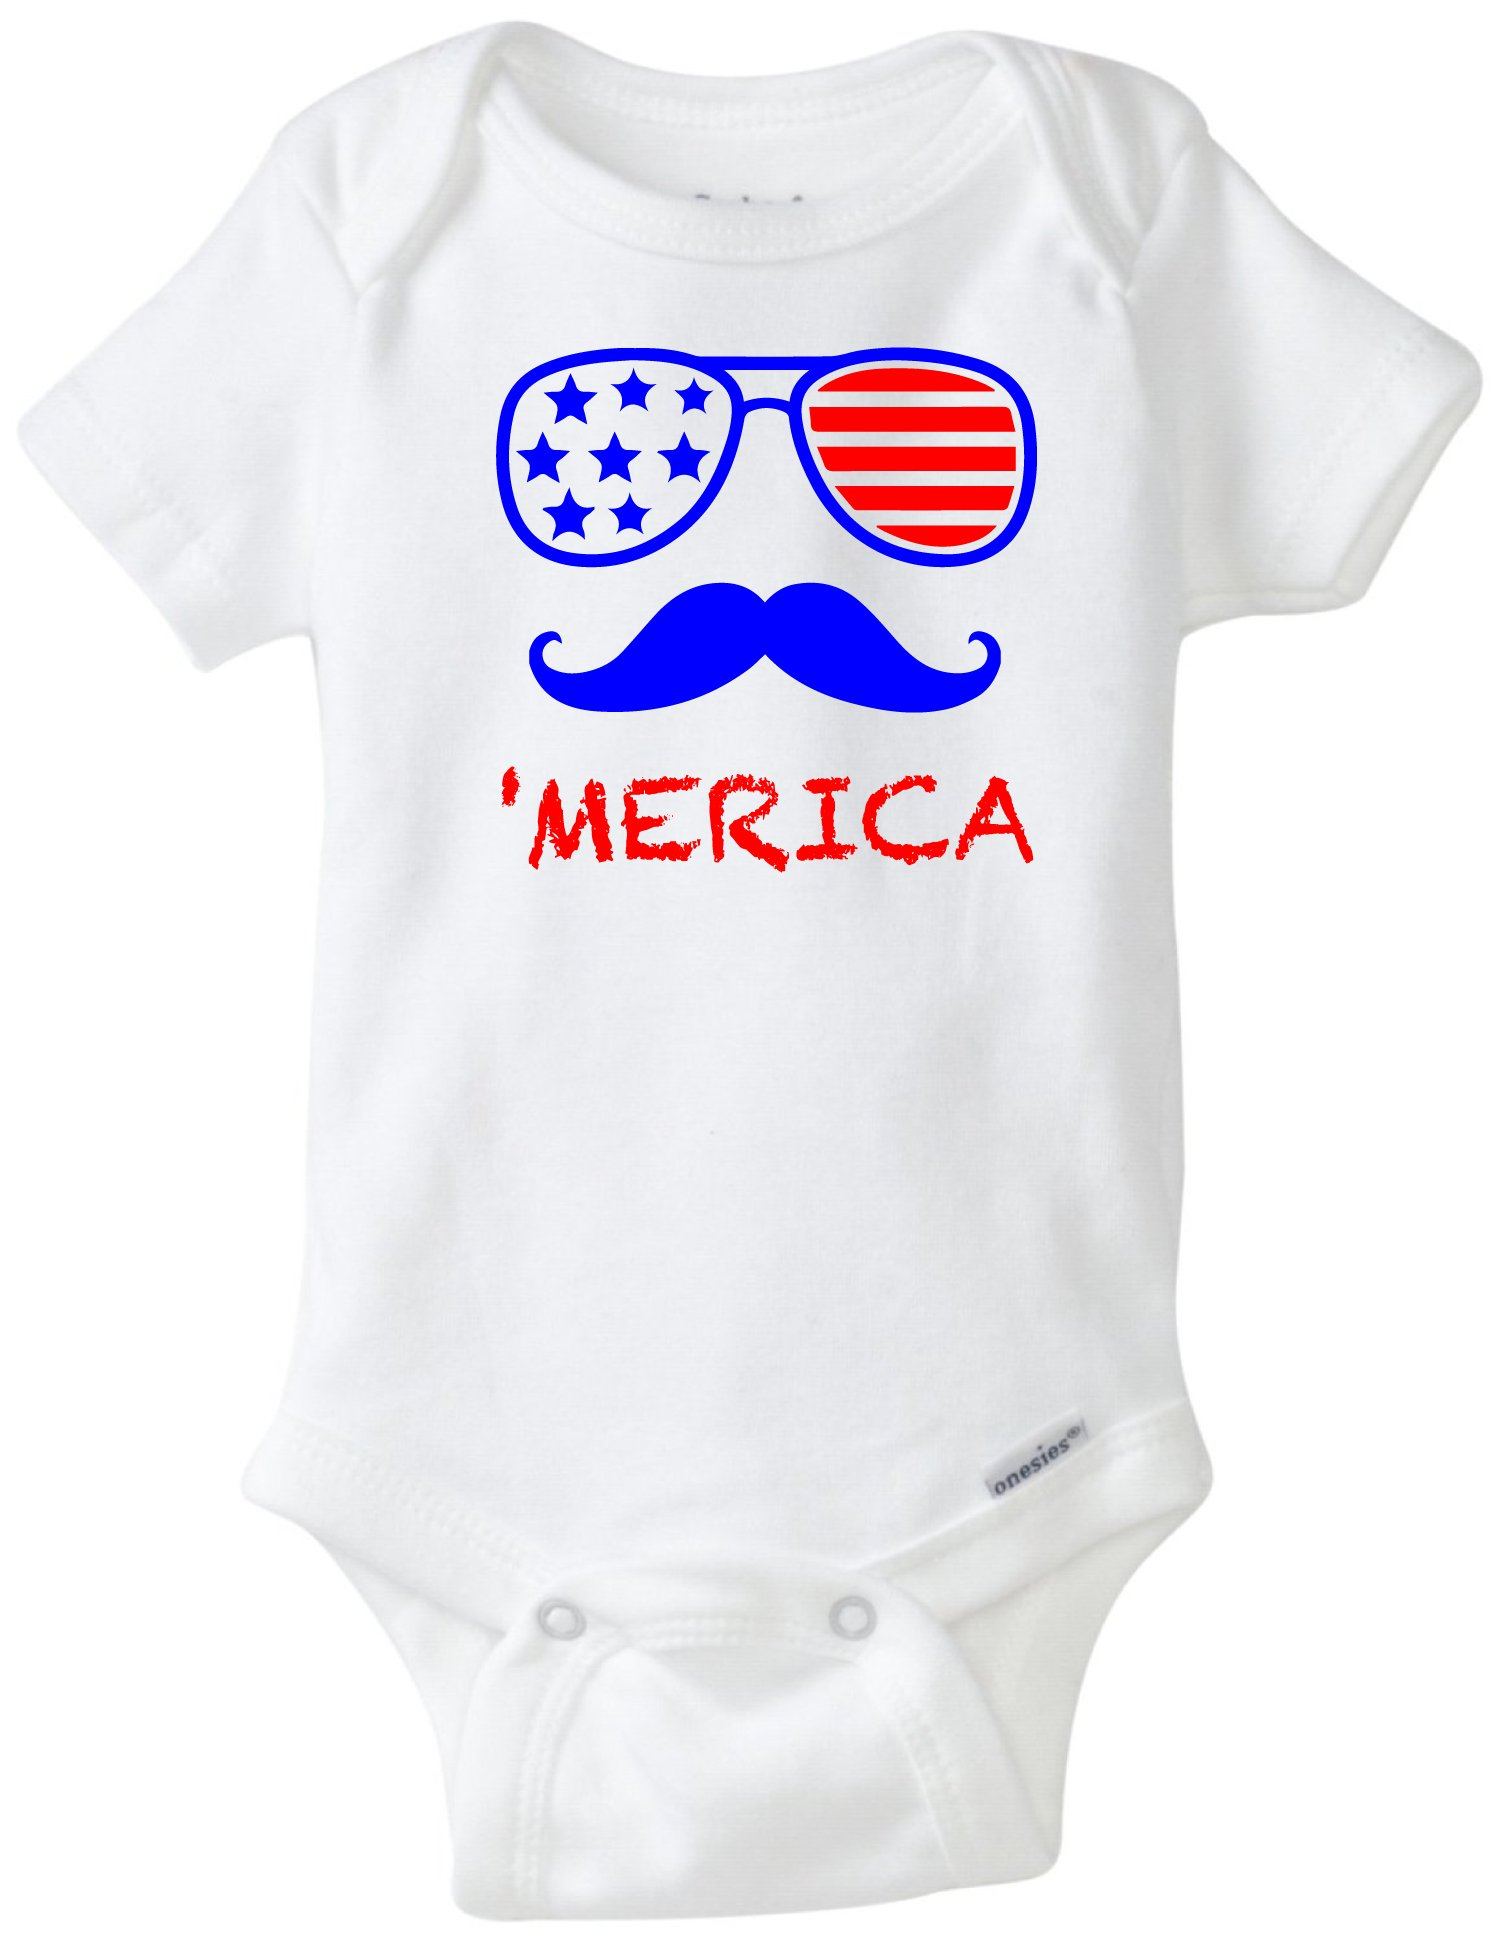 Mustache 'Merica Sunglasses Patriotic 4th of July Funny Baby Onesie Blakenreag Baby Boy Girl Clothes Bodysuit (18 Month)